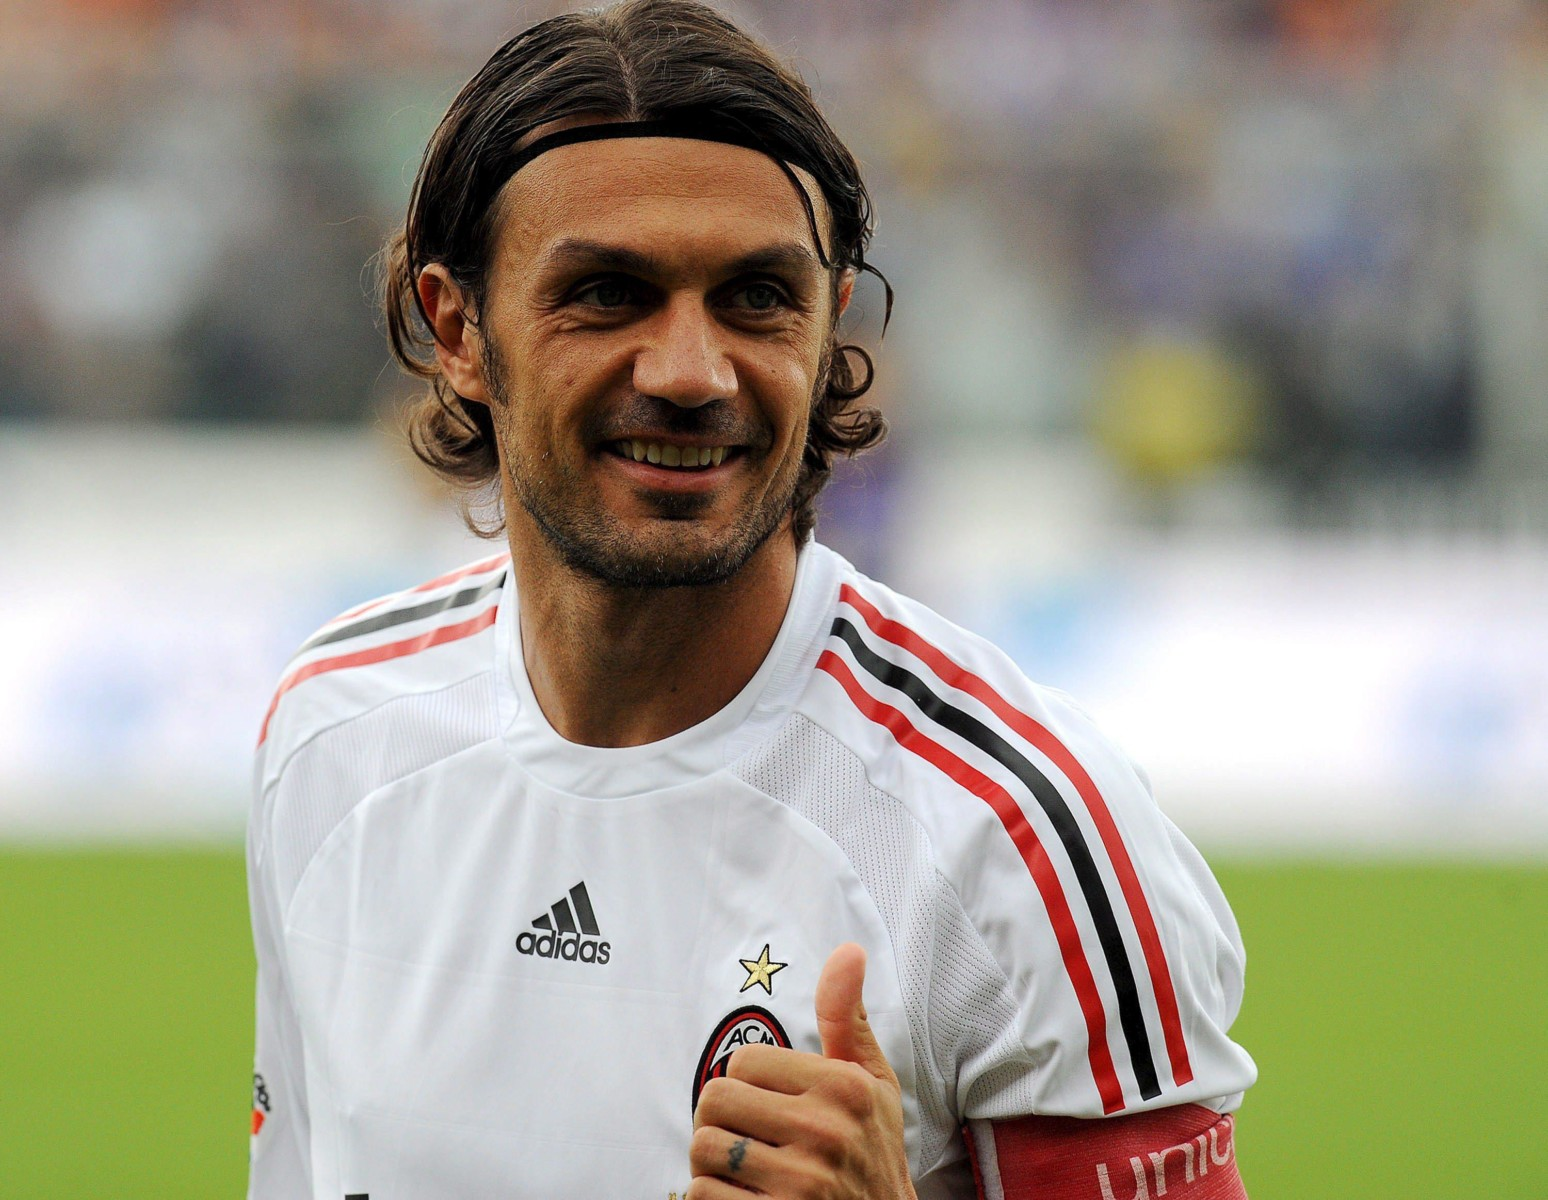 Paolo Maldini played for AC Milan for 25 years